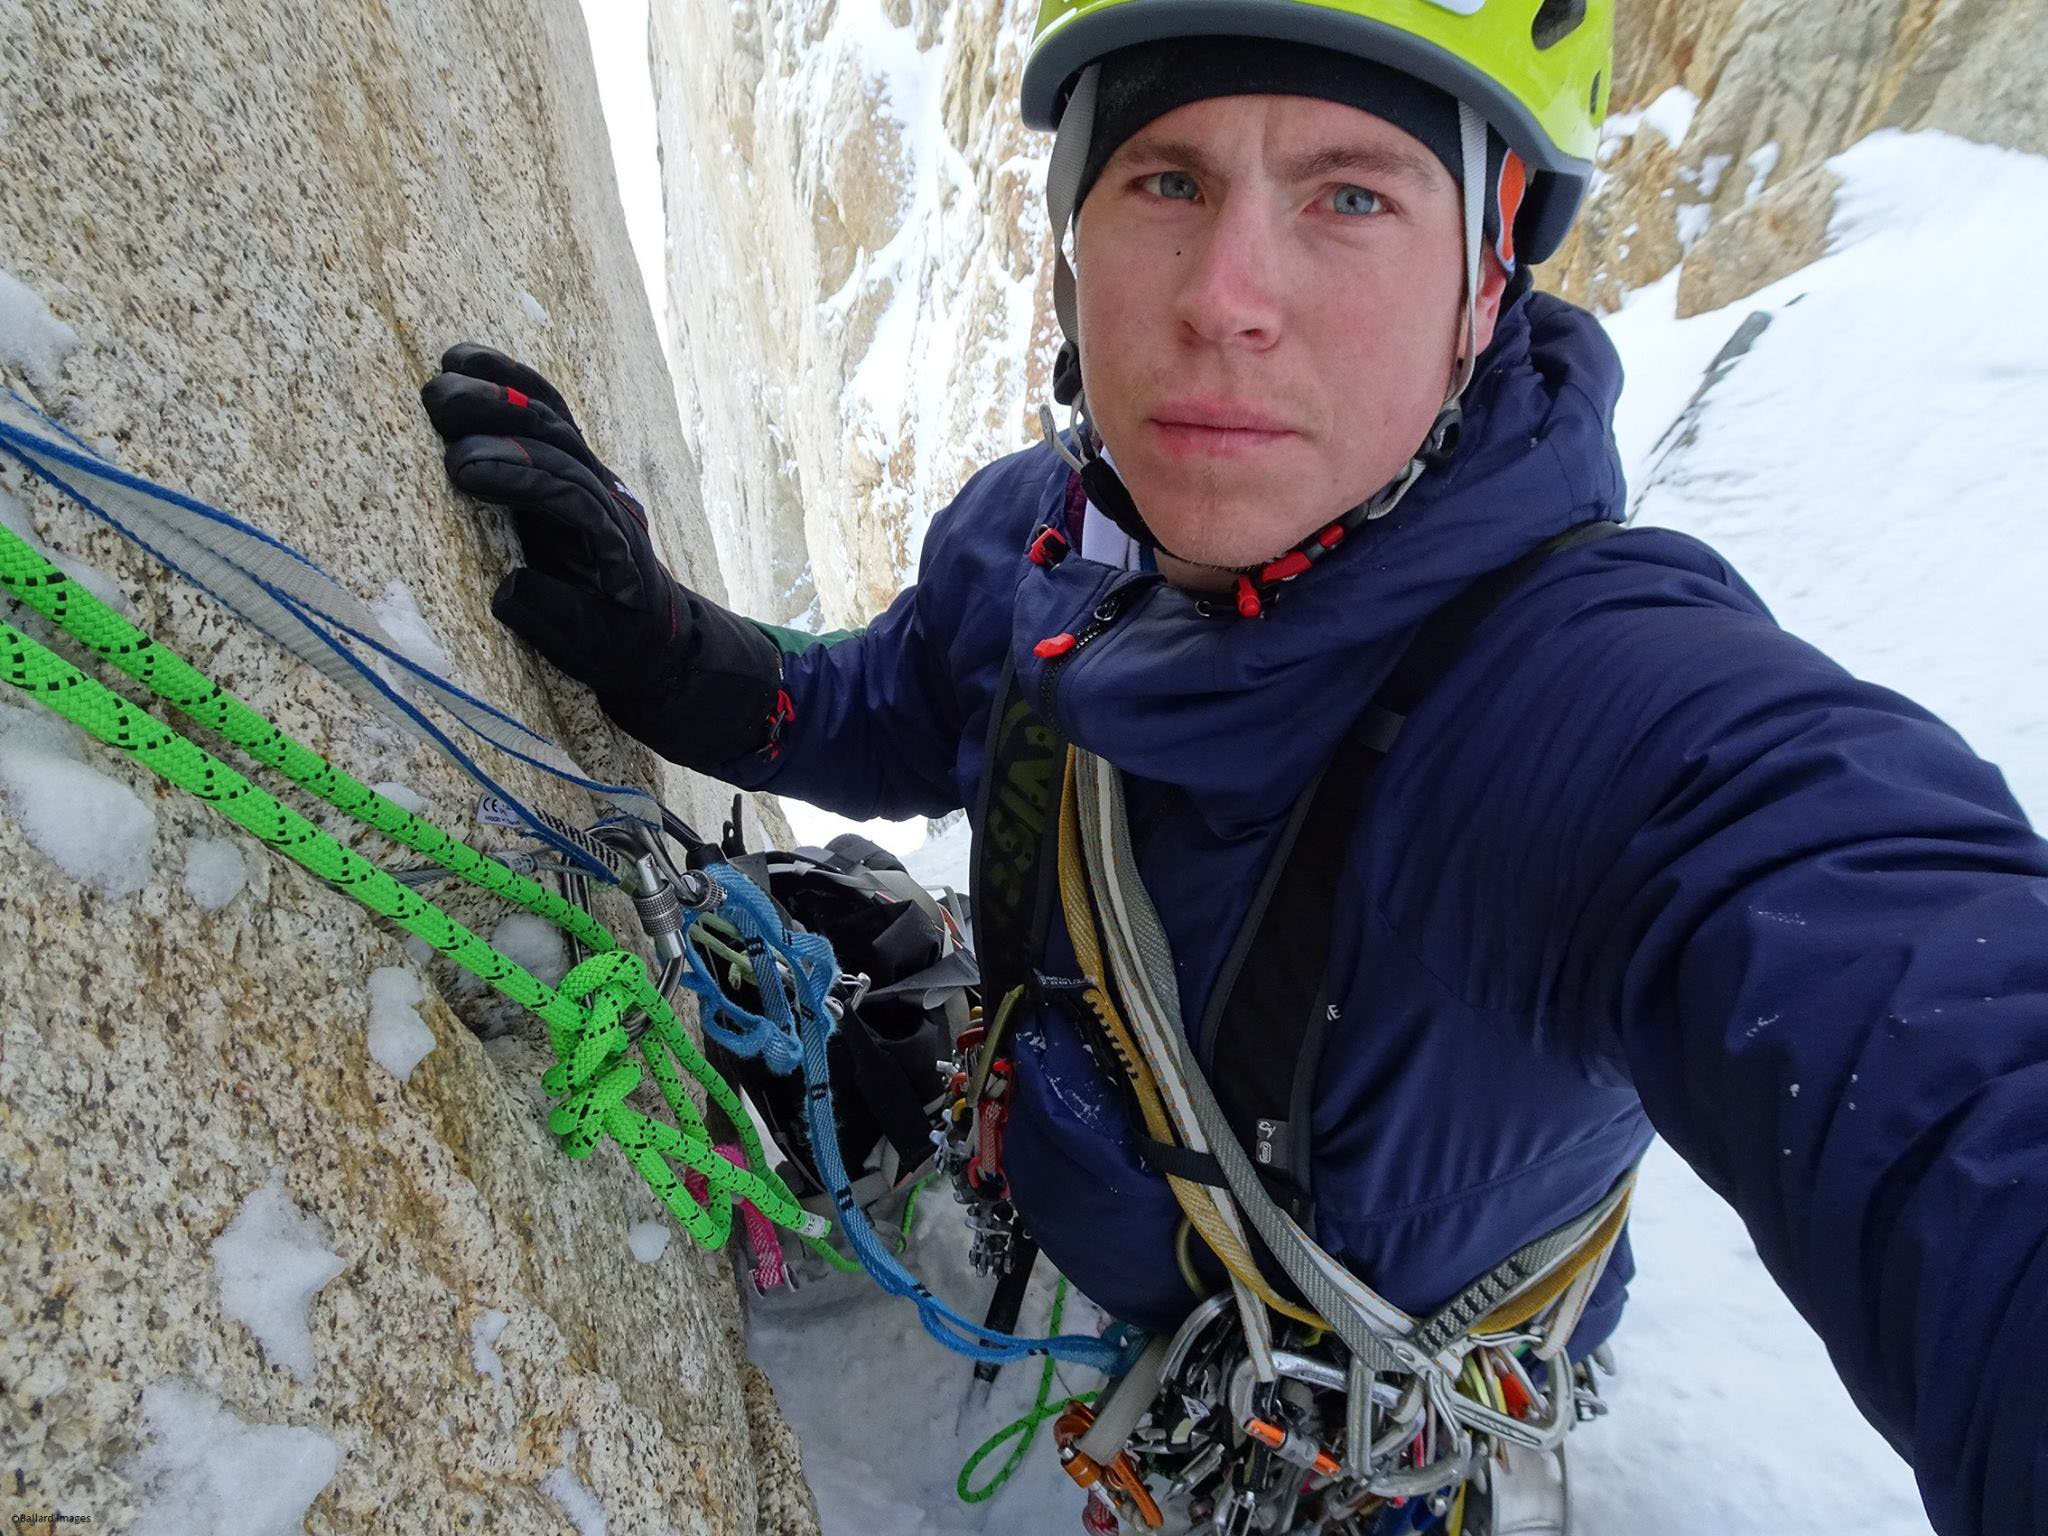 """Image of Tom Ballard - A British climber whose mother died on K2 has been reported missing on a peak in Pakistan. Tom Ballard and Italian climber Daniele Nardi are trying to reach the summit of Nanga Parbat - nicknamed """"Killer Mountain"""". The last contact from the pair was on Sunday, from an altitude of about 6,300m (20,669 ft). A search operation has been delayed amid tensions between Pakistan and India. Mr Ballard, from Derbyshire, is an experienced climber and the first person to solo climb all six major north faces of the Alps in one winter. He is the son of Alison Hargreaves, who was the first woman to conquer Everest unaided in 1995. Picture: Universal News And Sport (UK) 27/02/2019"""